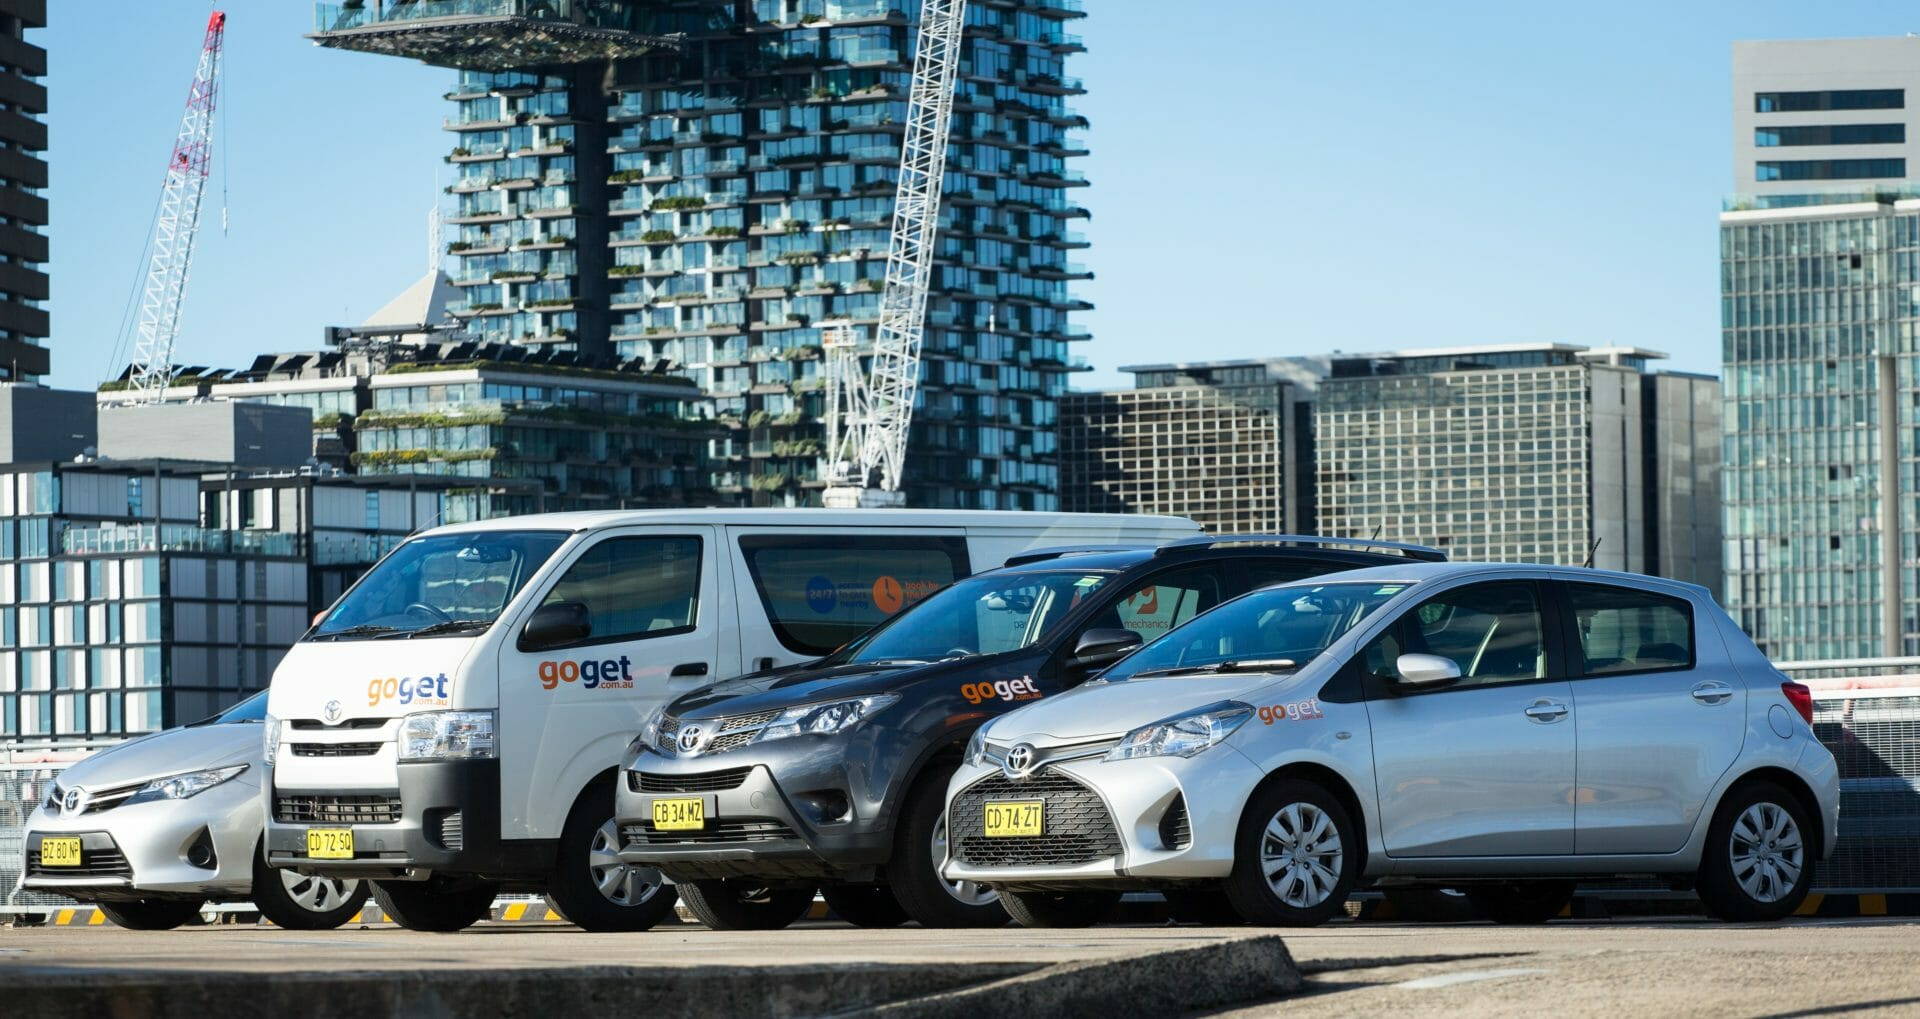 A lineup of GoGet cars in the Sydney CBD - goget has a range of vehicles for hire like vans, suvs, and hatchbacks